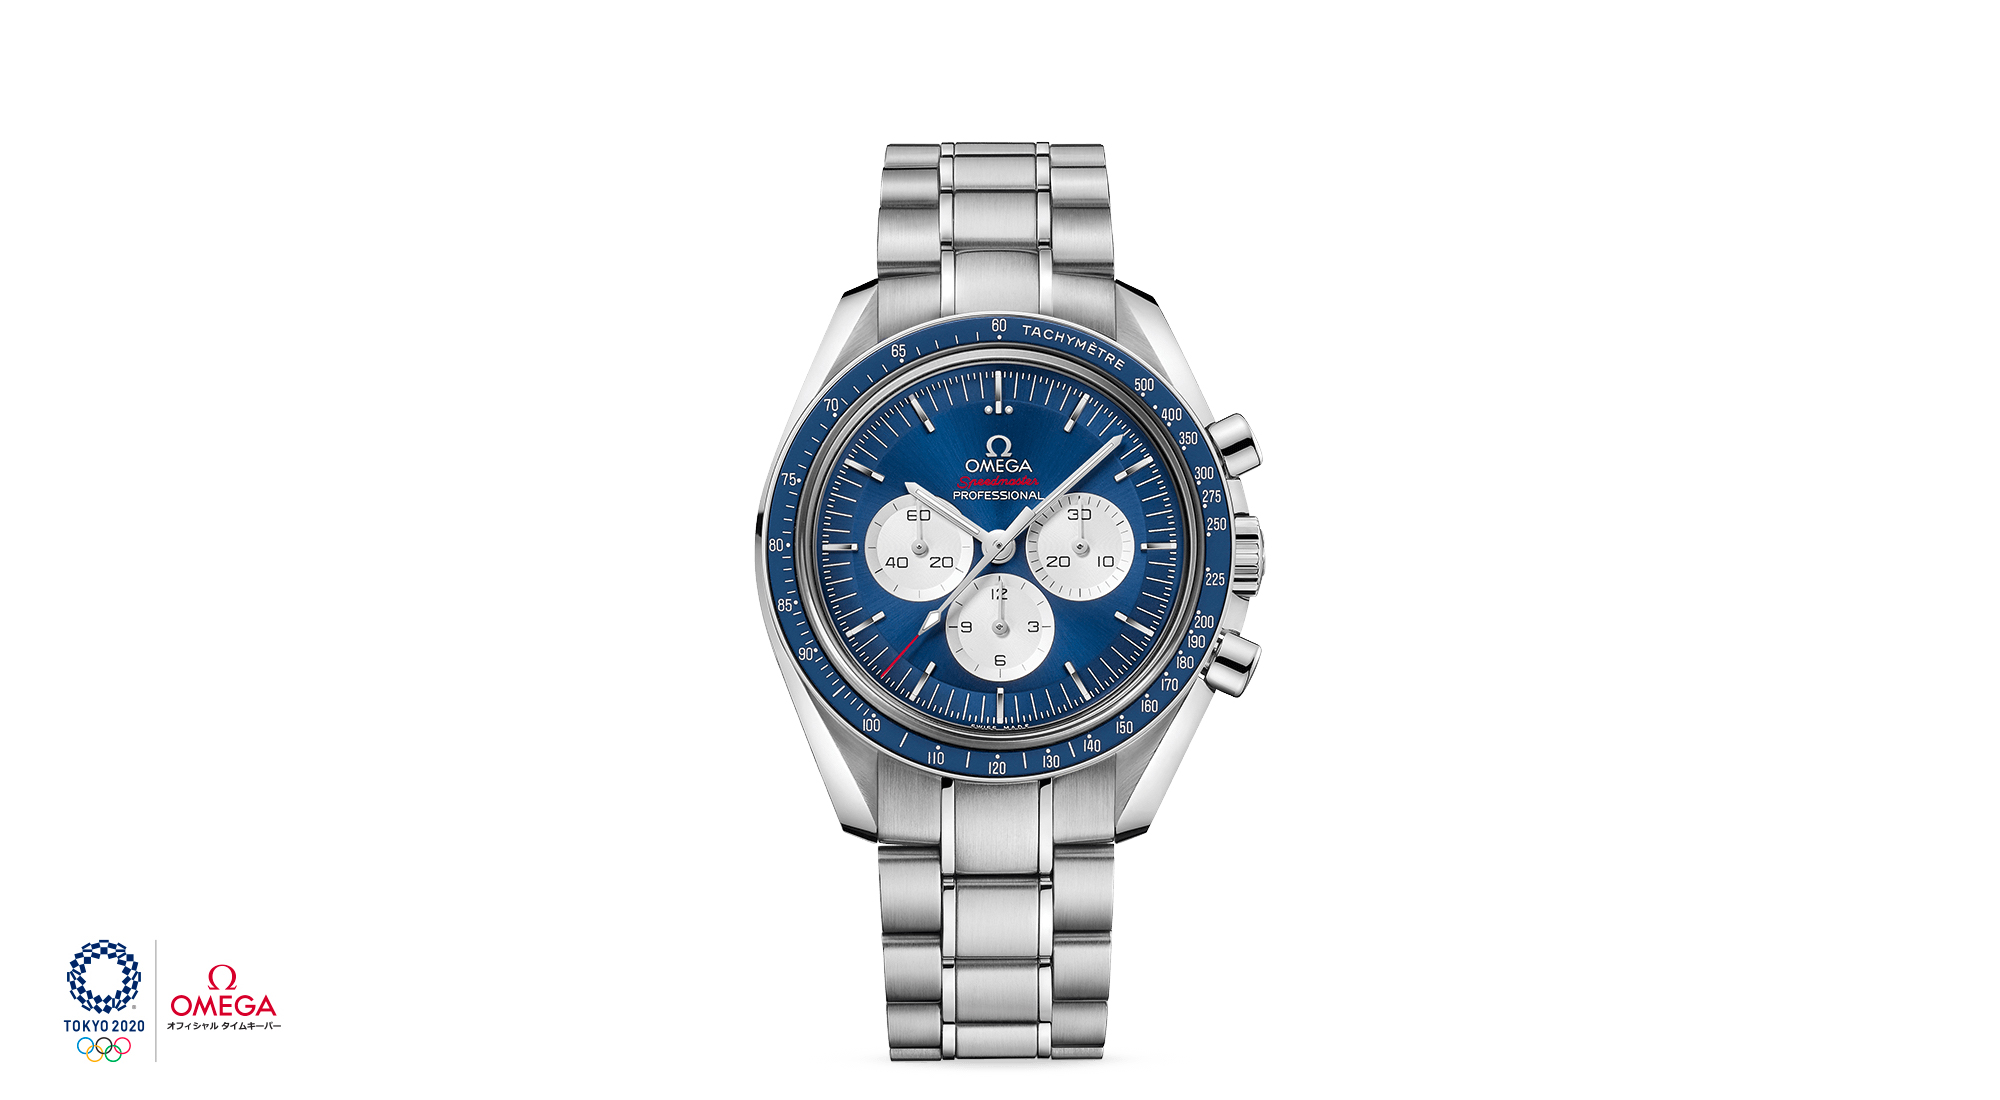 New Omega Speedmaster Professional Tokyo Olympics 2020 Speedywatches